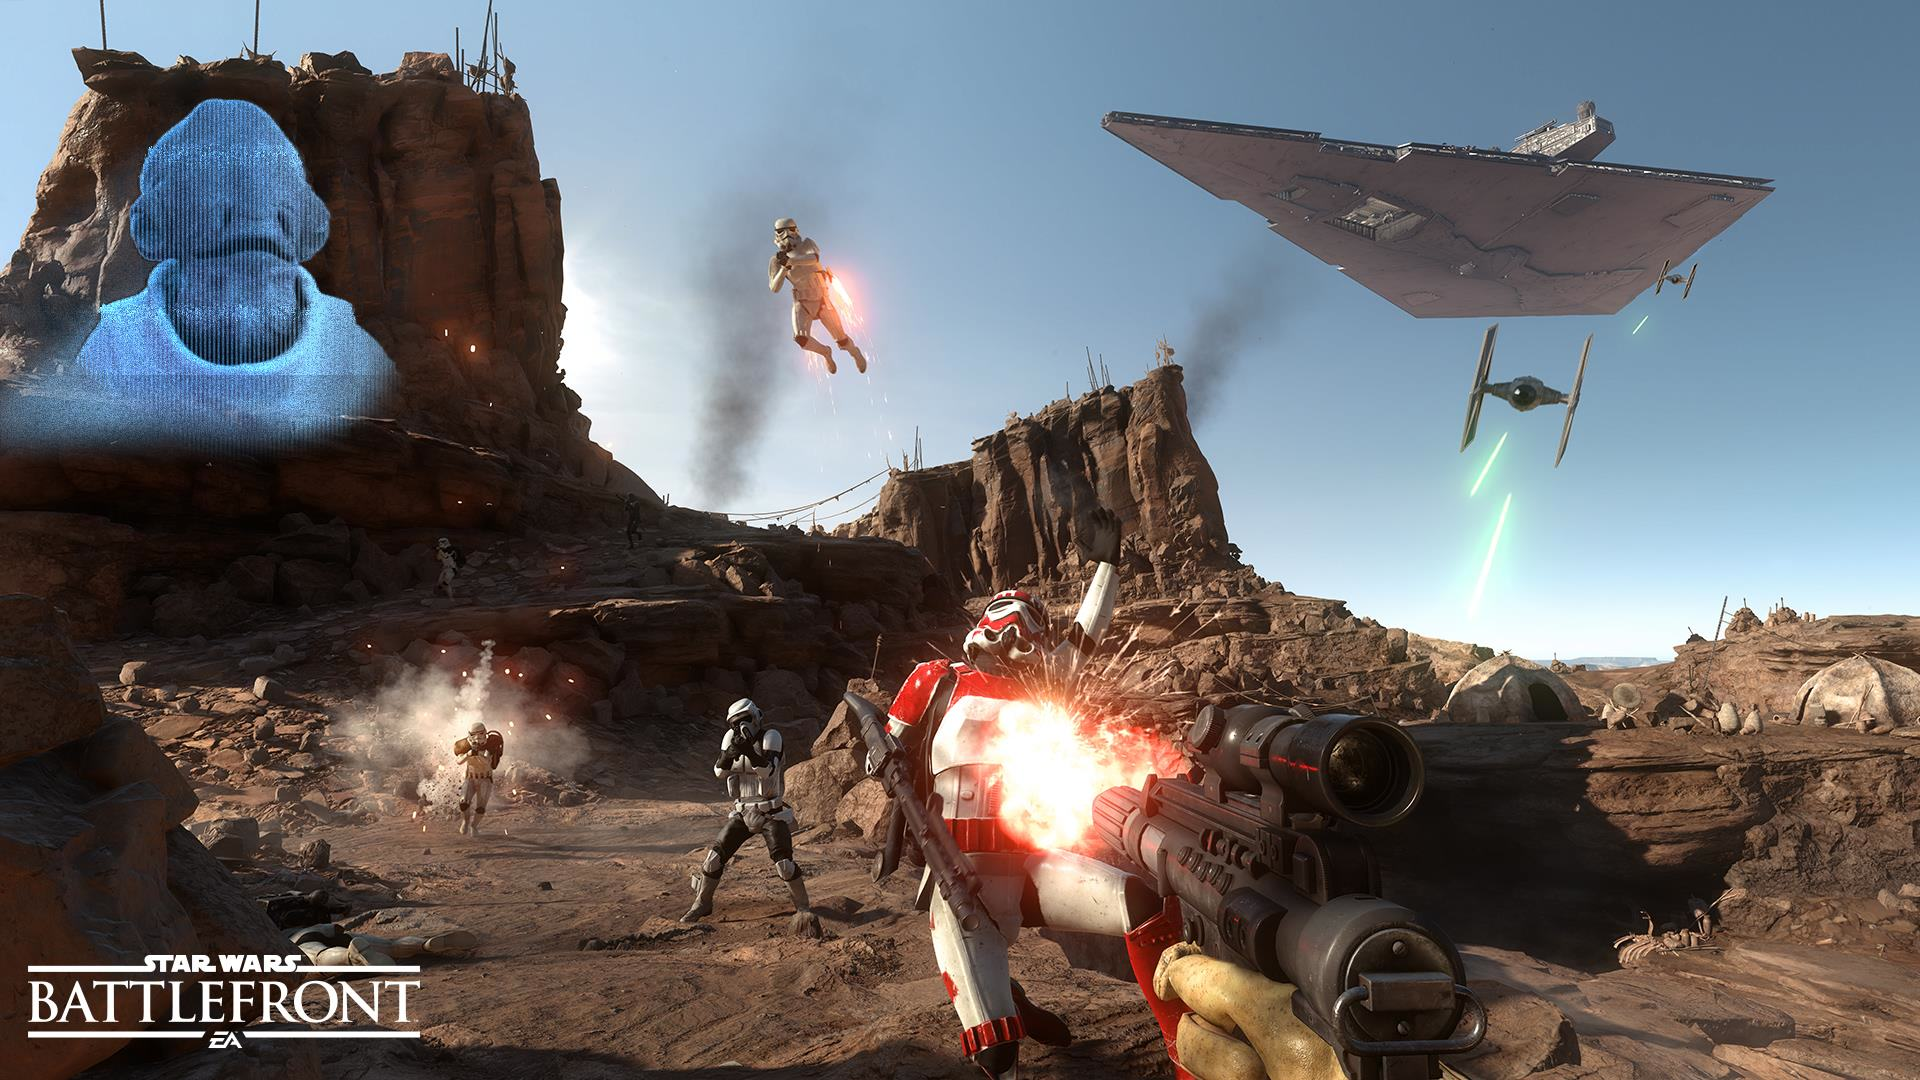 EA Reveal Details Of Star Wars Battlefront Free January Update And Beyond star wars battlefront e3 screen 2